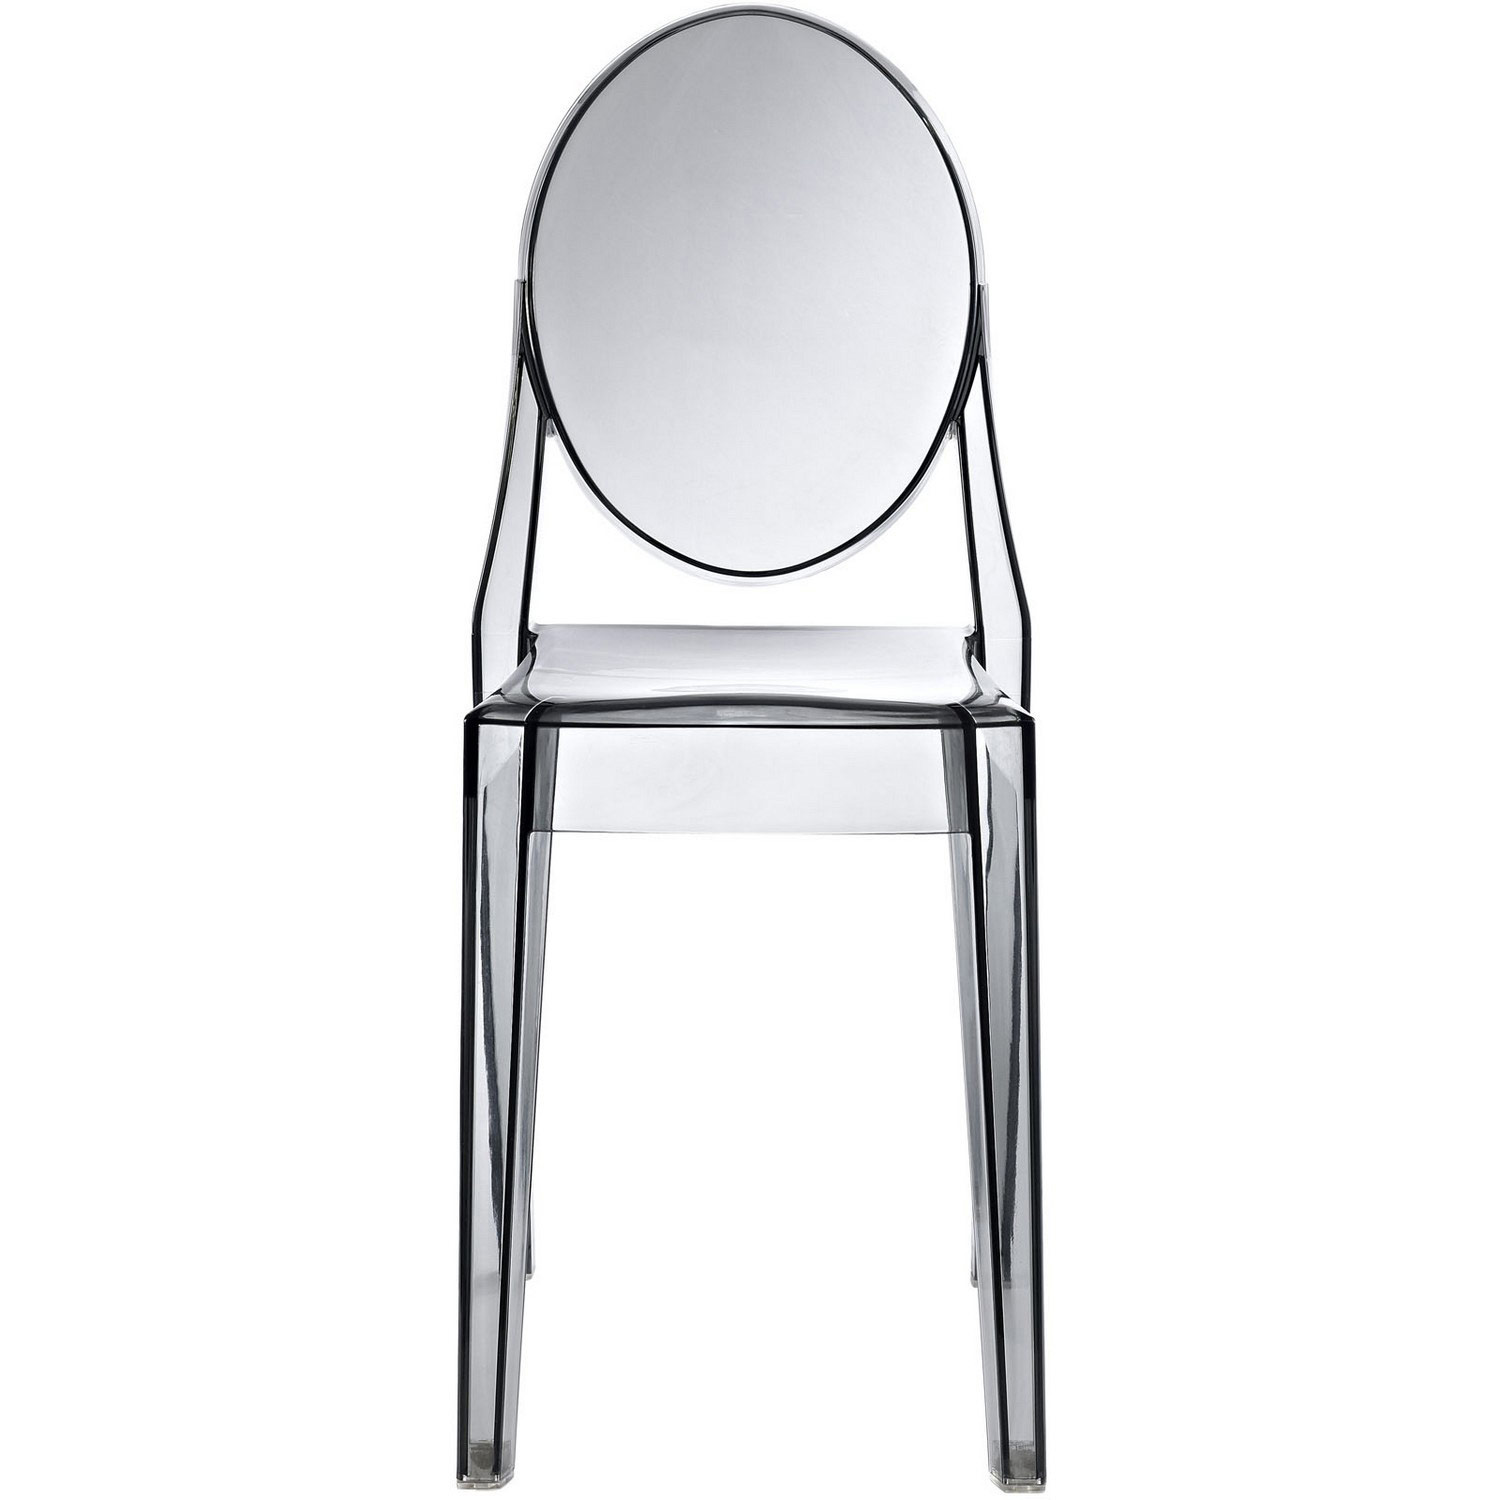 Modway Casper Dining Side Chair - Smoked Clear